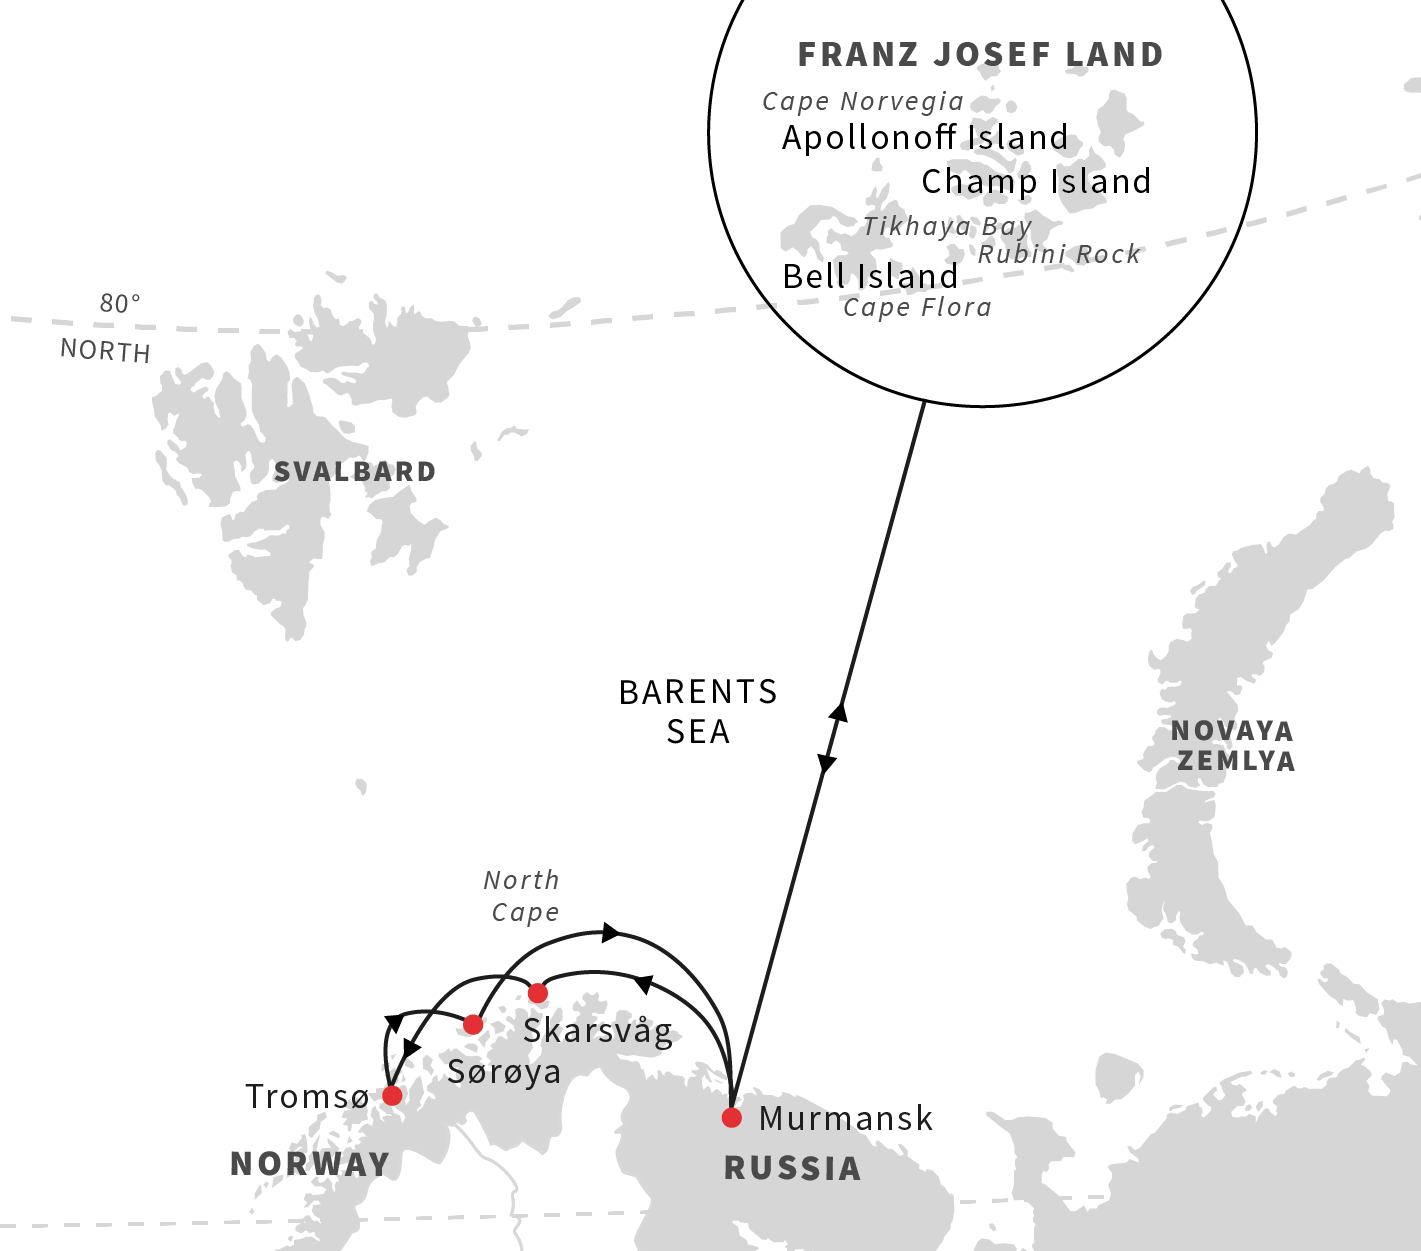 Cruise From Norway To Franz Josef Land